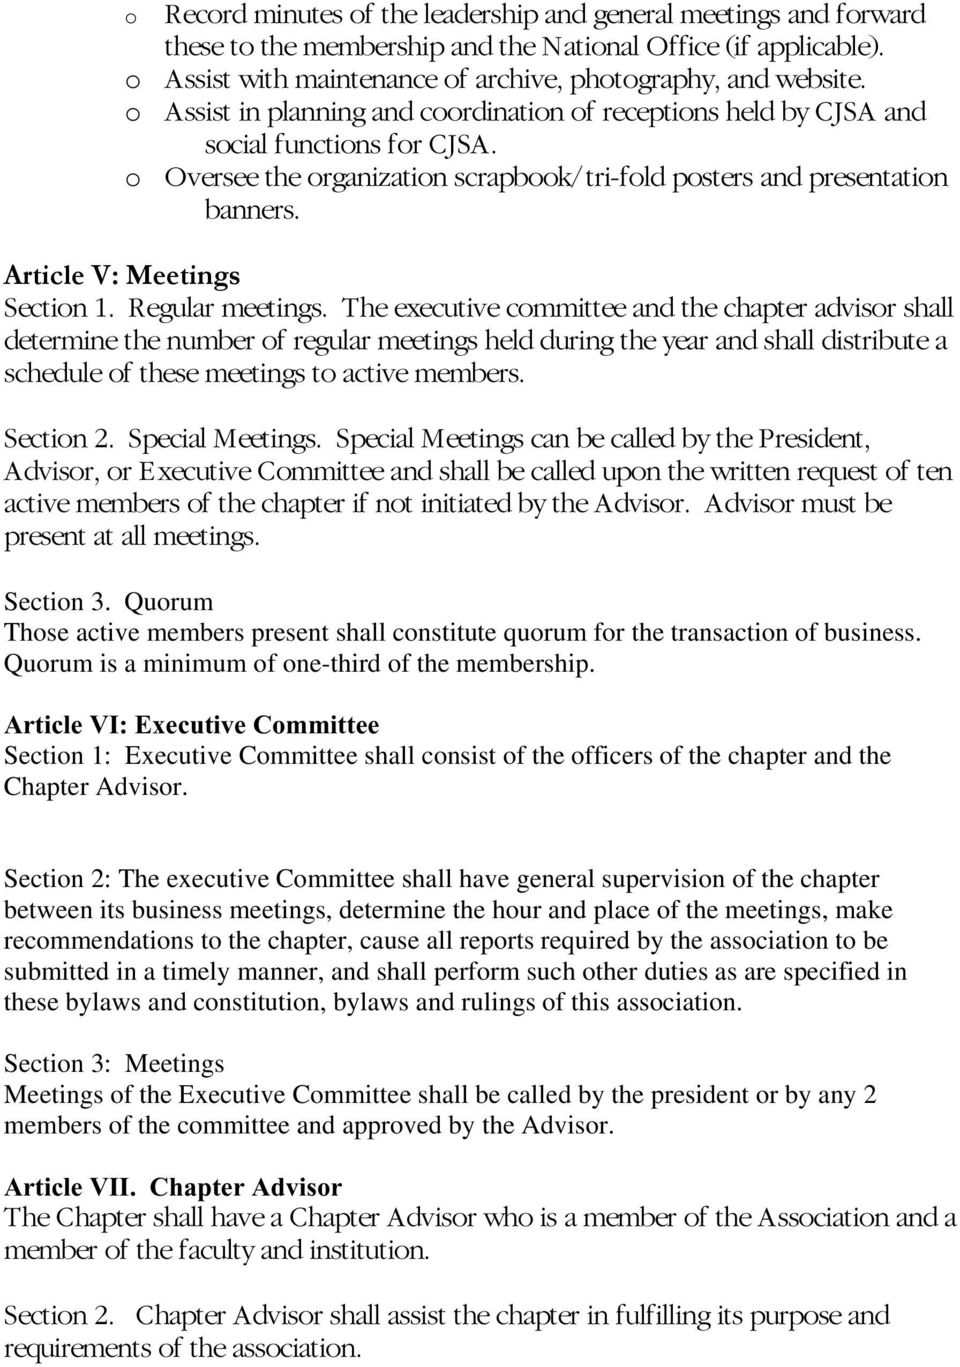 Regular meetings. The executive cmmittee and the chapter advisr shall determine the number f regular meetings held during the year and shall distribute a schedule f these meetings t active members.